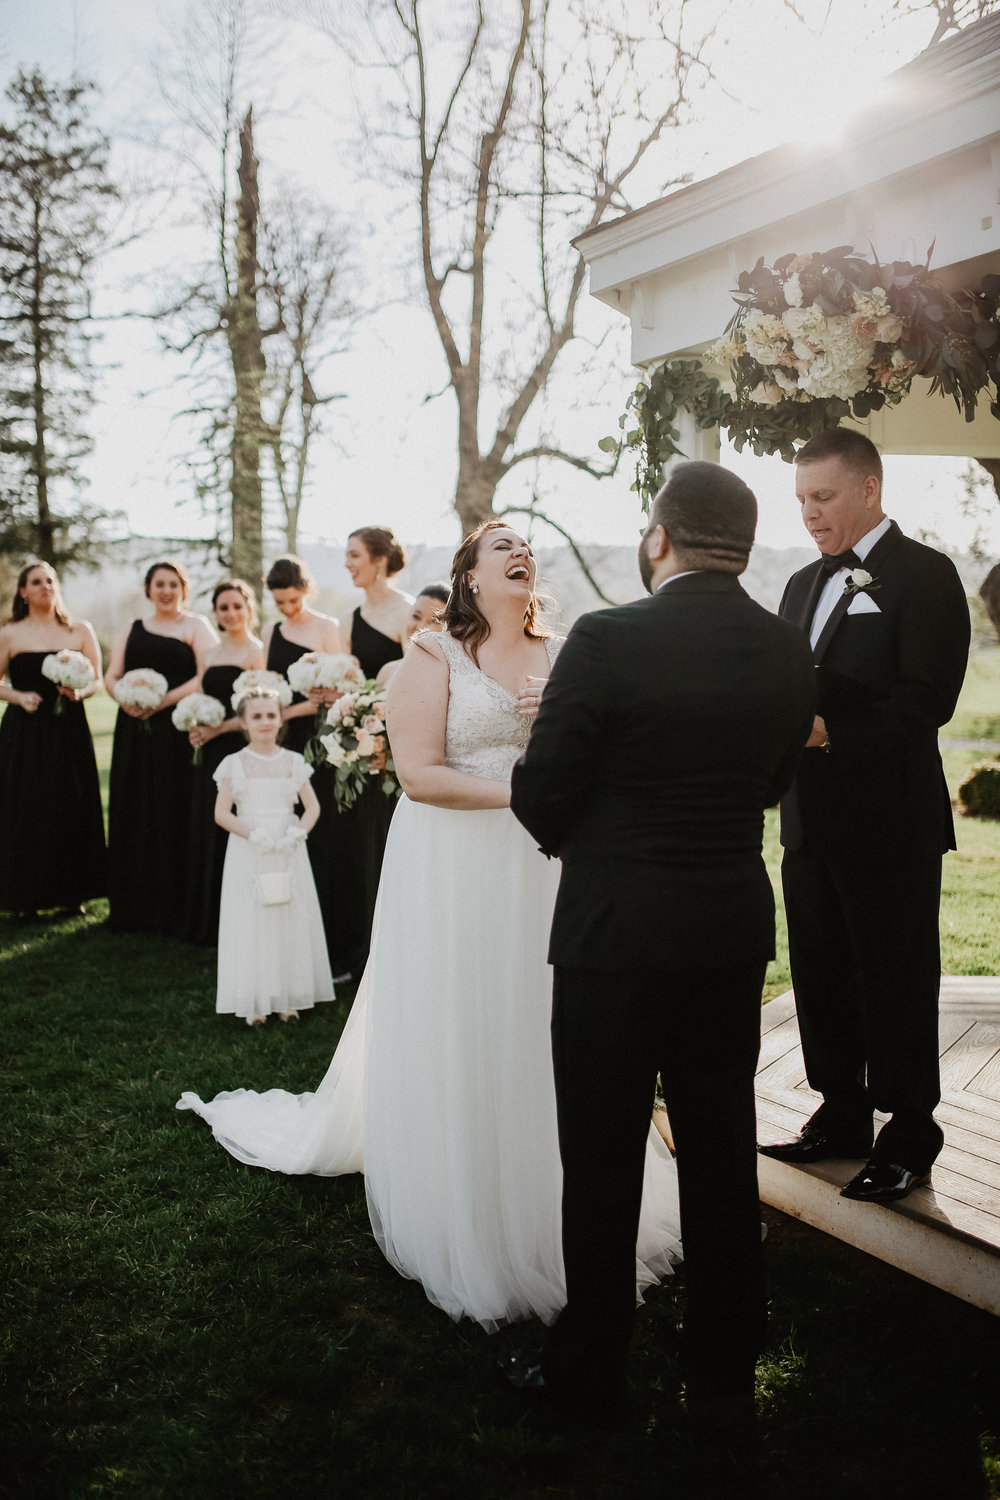 AnthonyKyndra_Married_2018-301.jpg